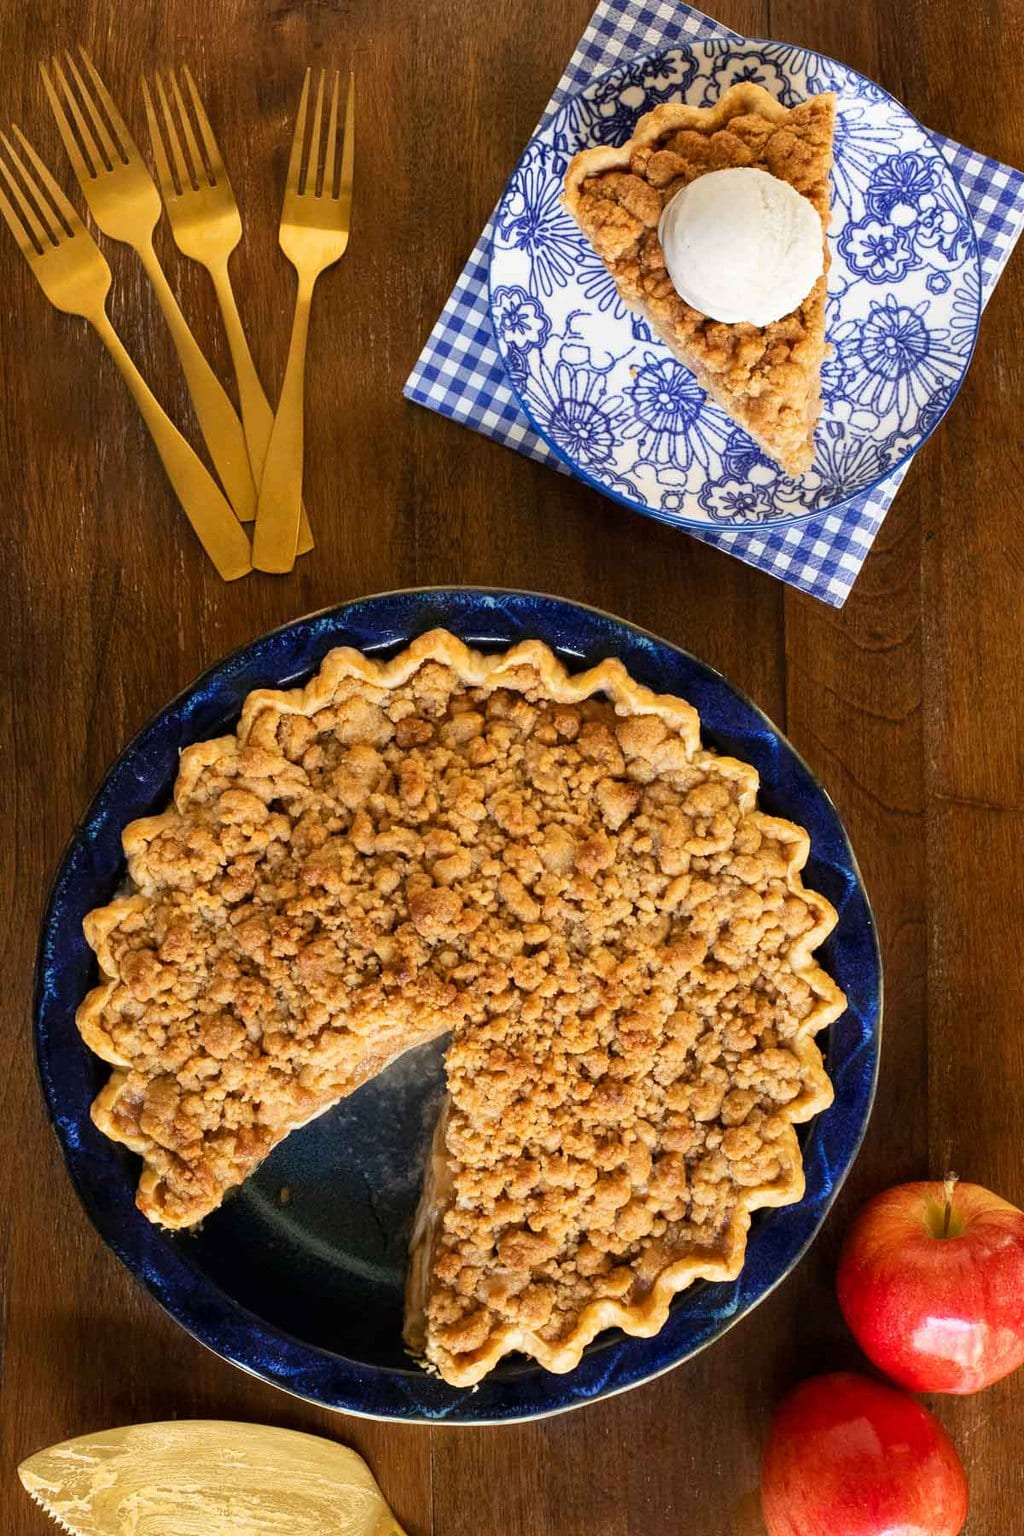 Vertical overhead photo of Annie's Easy Apple Crumble Pie on a wooden table with apples, forks and napkins